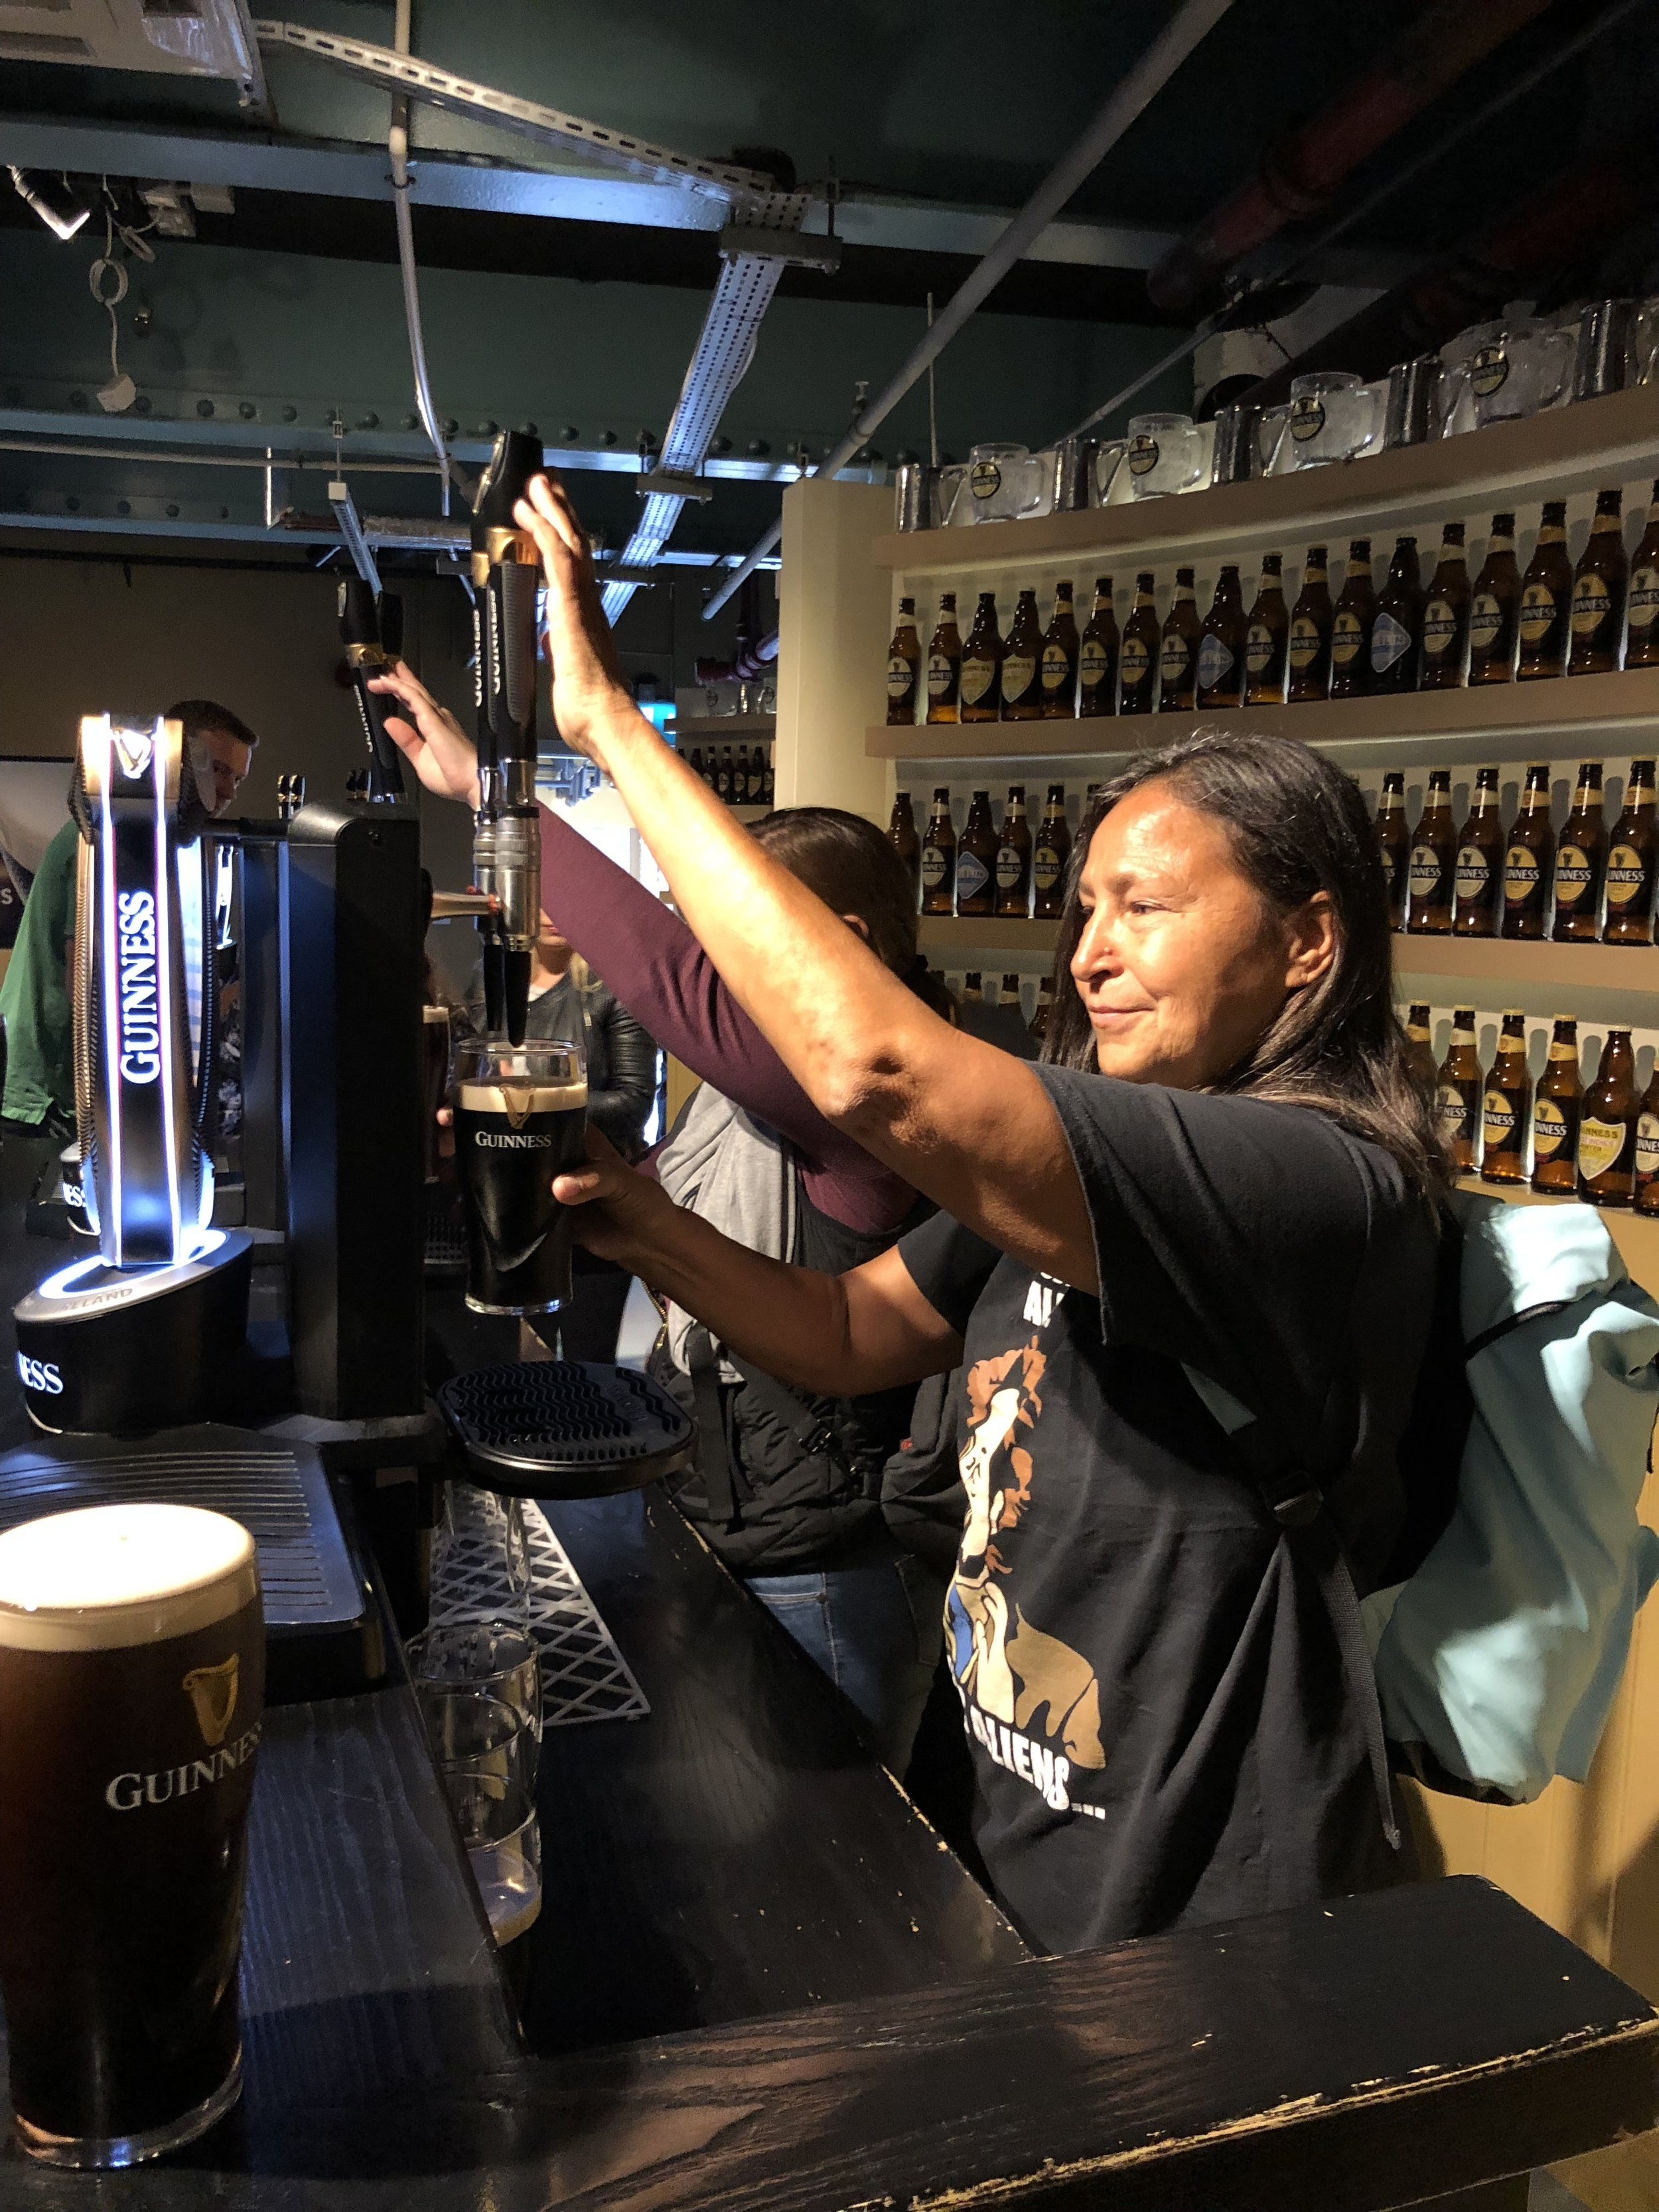 During our tour we were shown how to pour the perfect glass of Guinness. The instructor told us that if not done correctly, the taste will be somewhat diminished. After pouring a perfect pint, we were allowed to taste test our work.